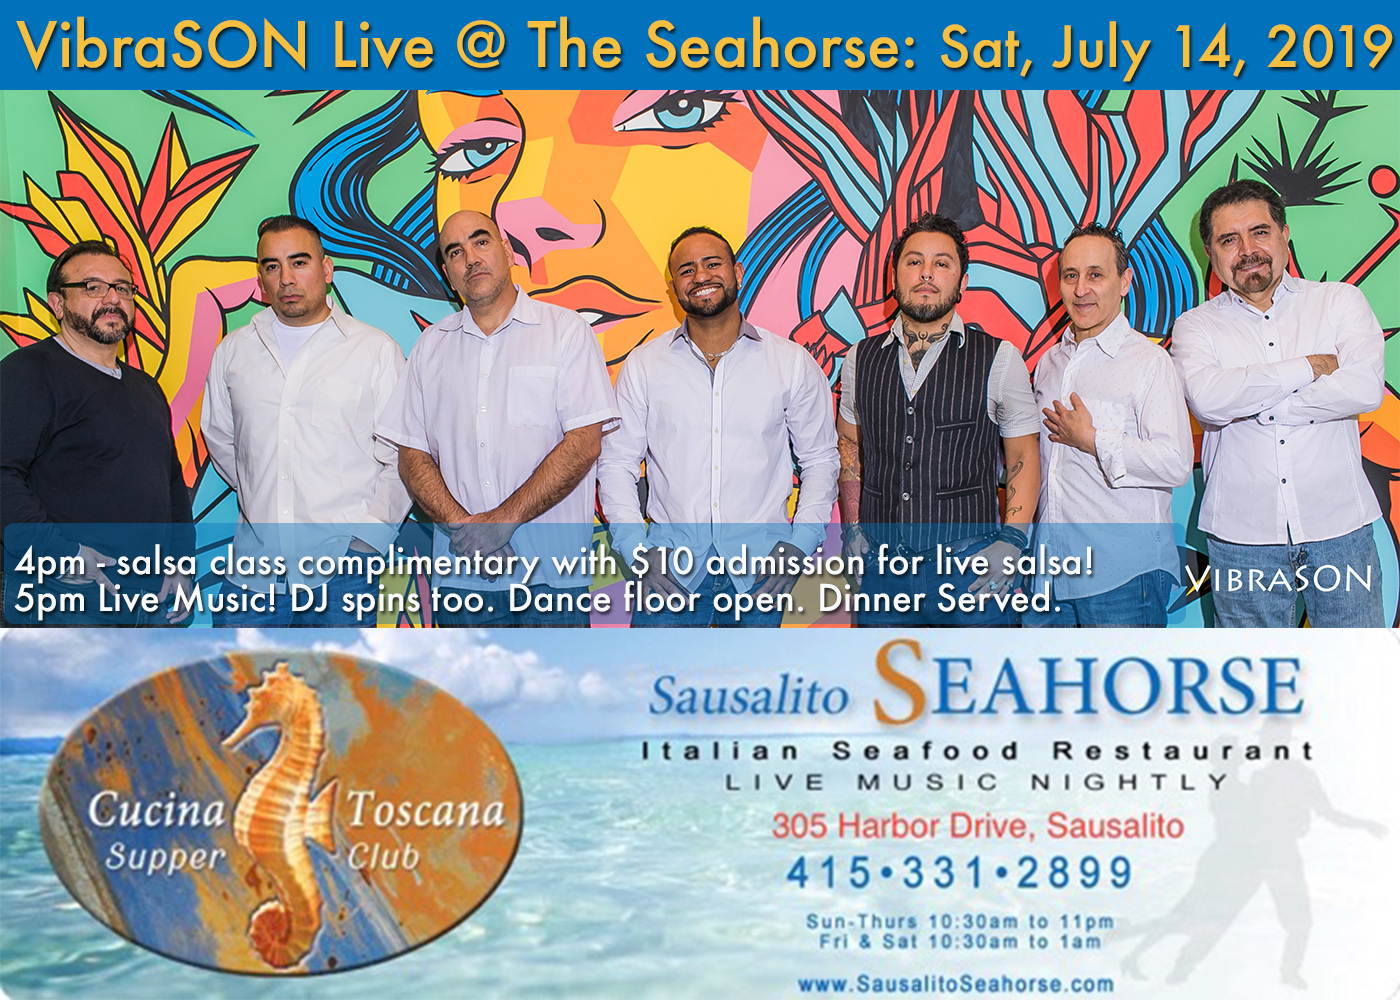 VibraSON returns to the always vibrant Seahorse Salsa Sundays on 9 June AND a return engagement on Sunday 14 July!